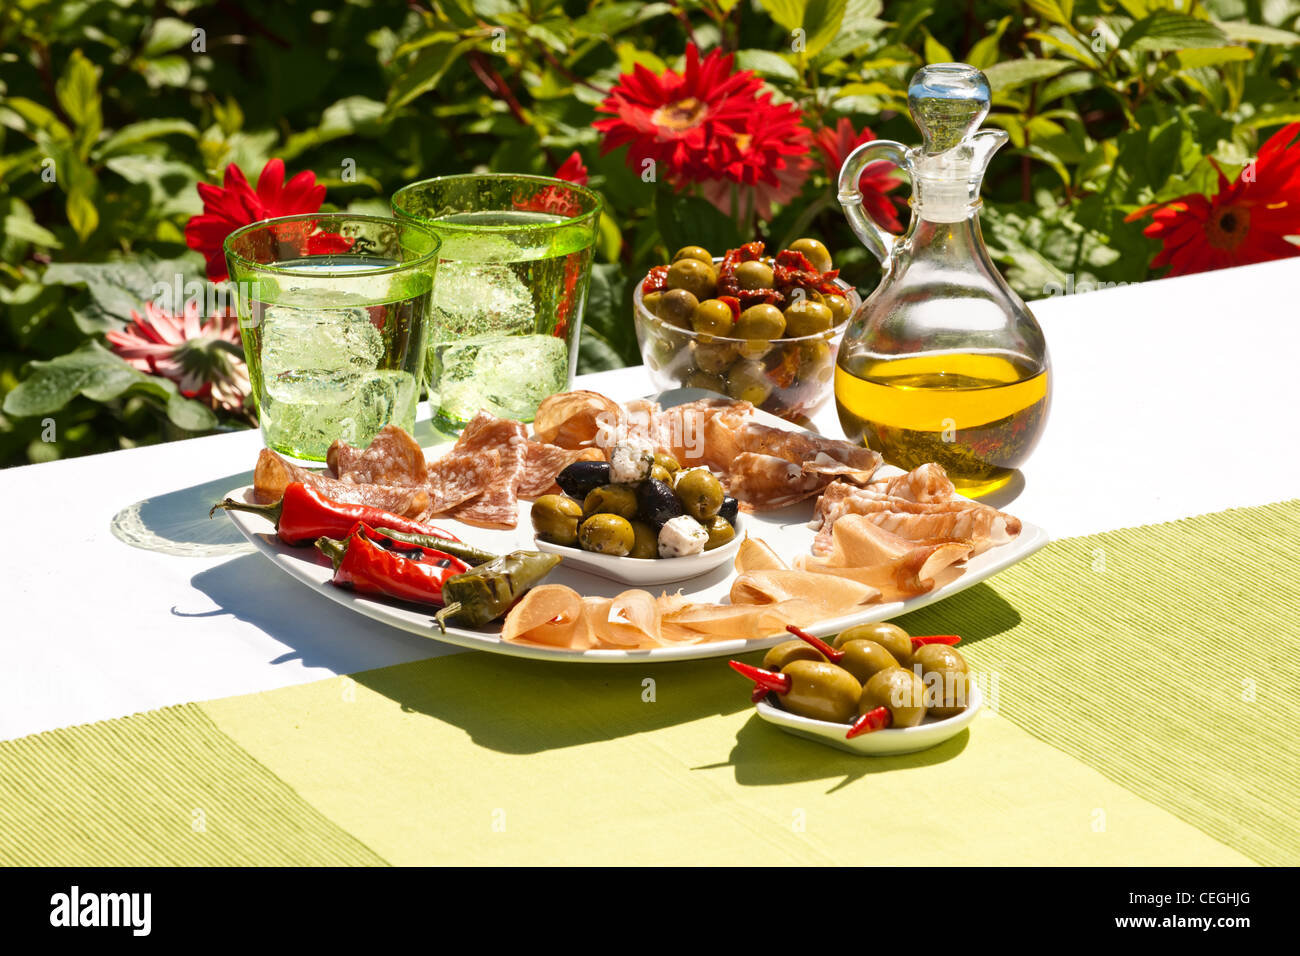 Anti Pasta Selection - Stock Image